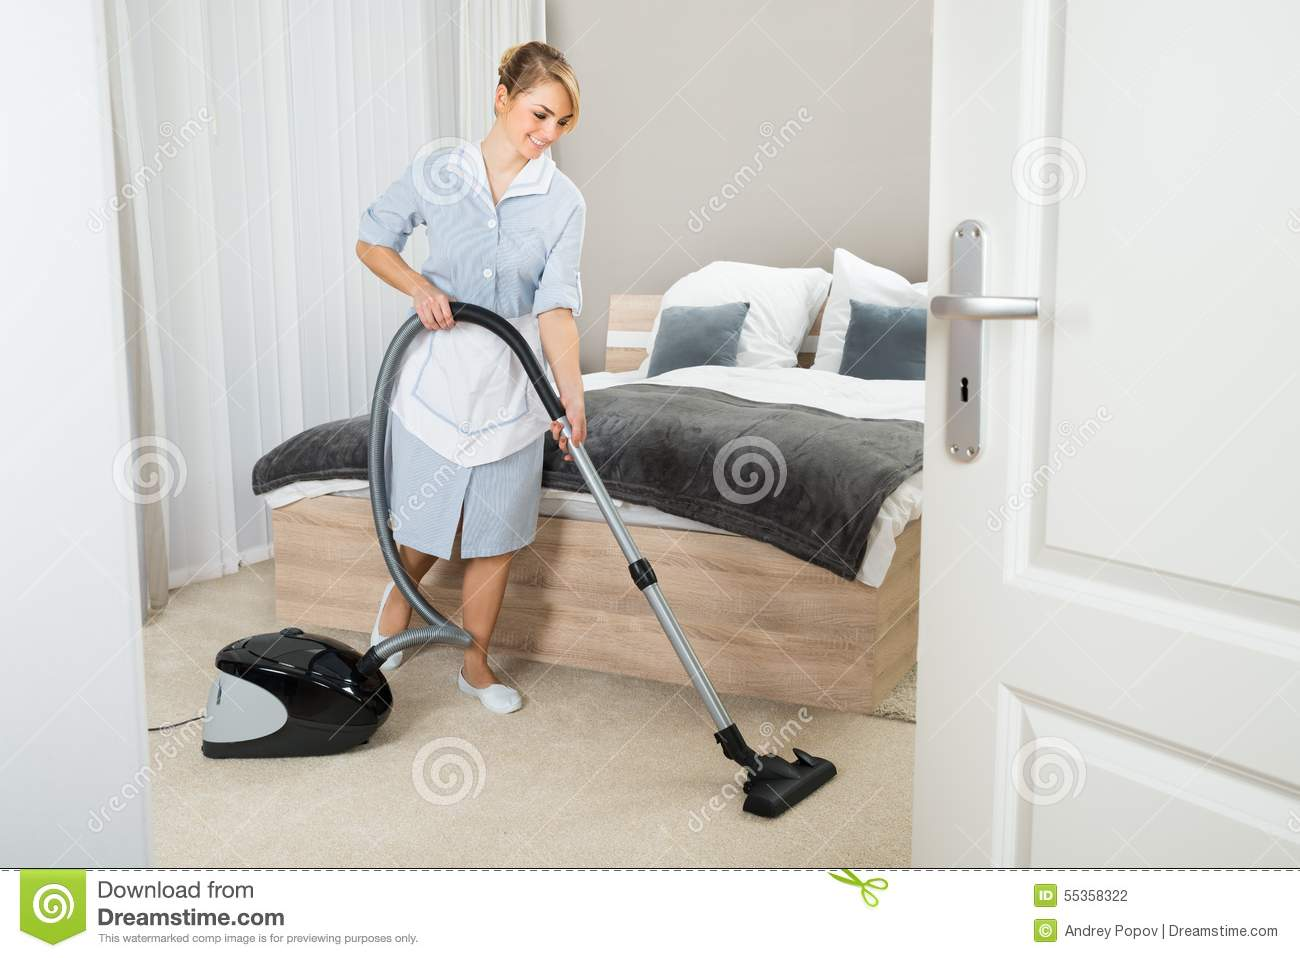 Maid With Vacuum Cleaner In Hotel Room Stock Photo Image